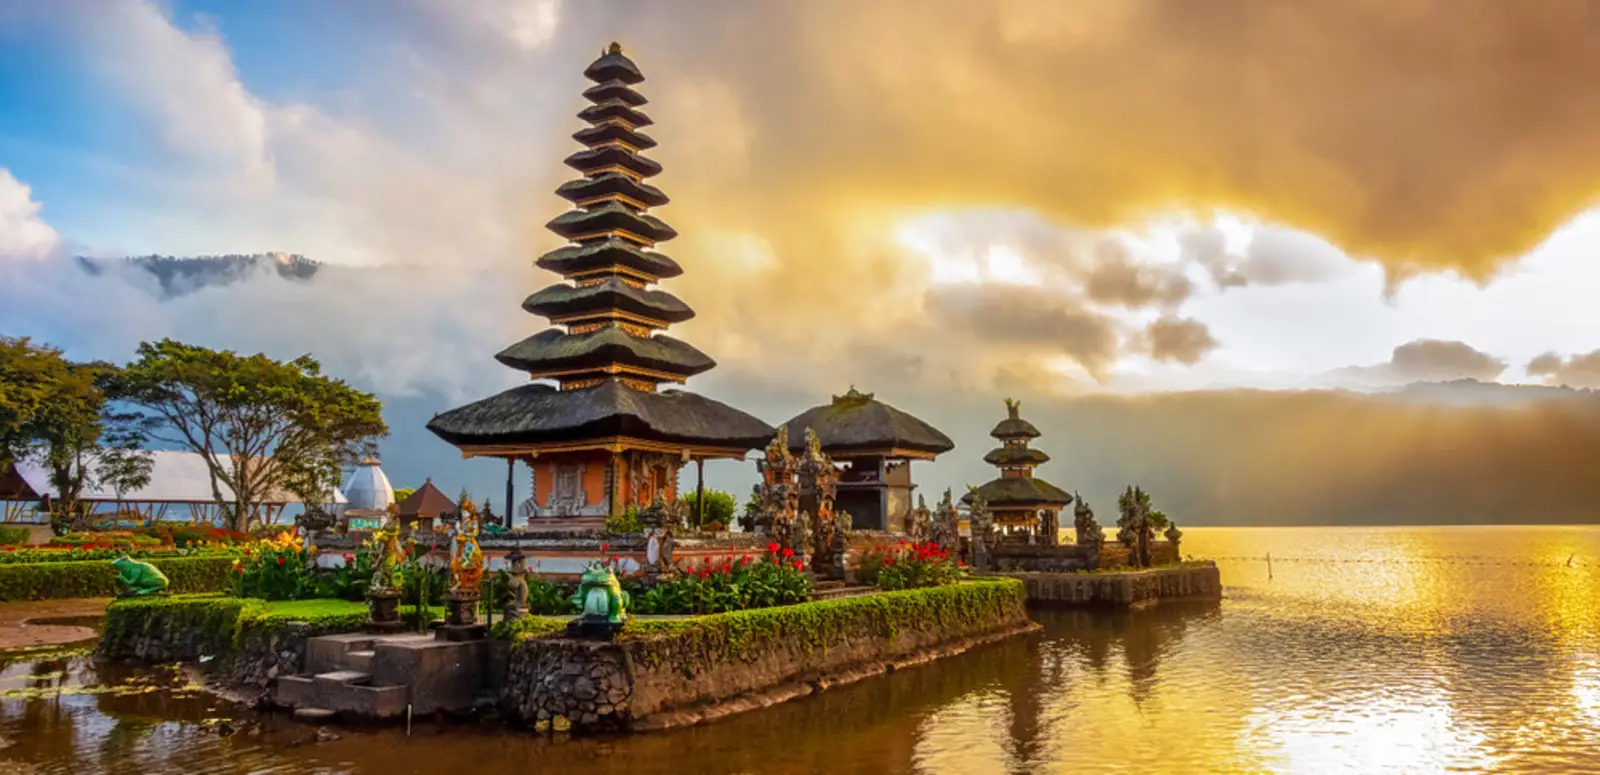 Plan Your Budget Trip to Bali